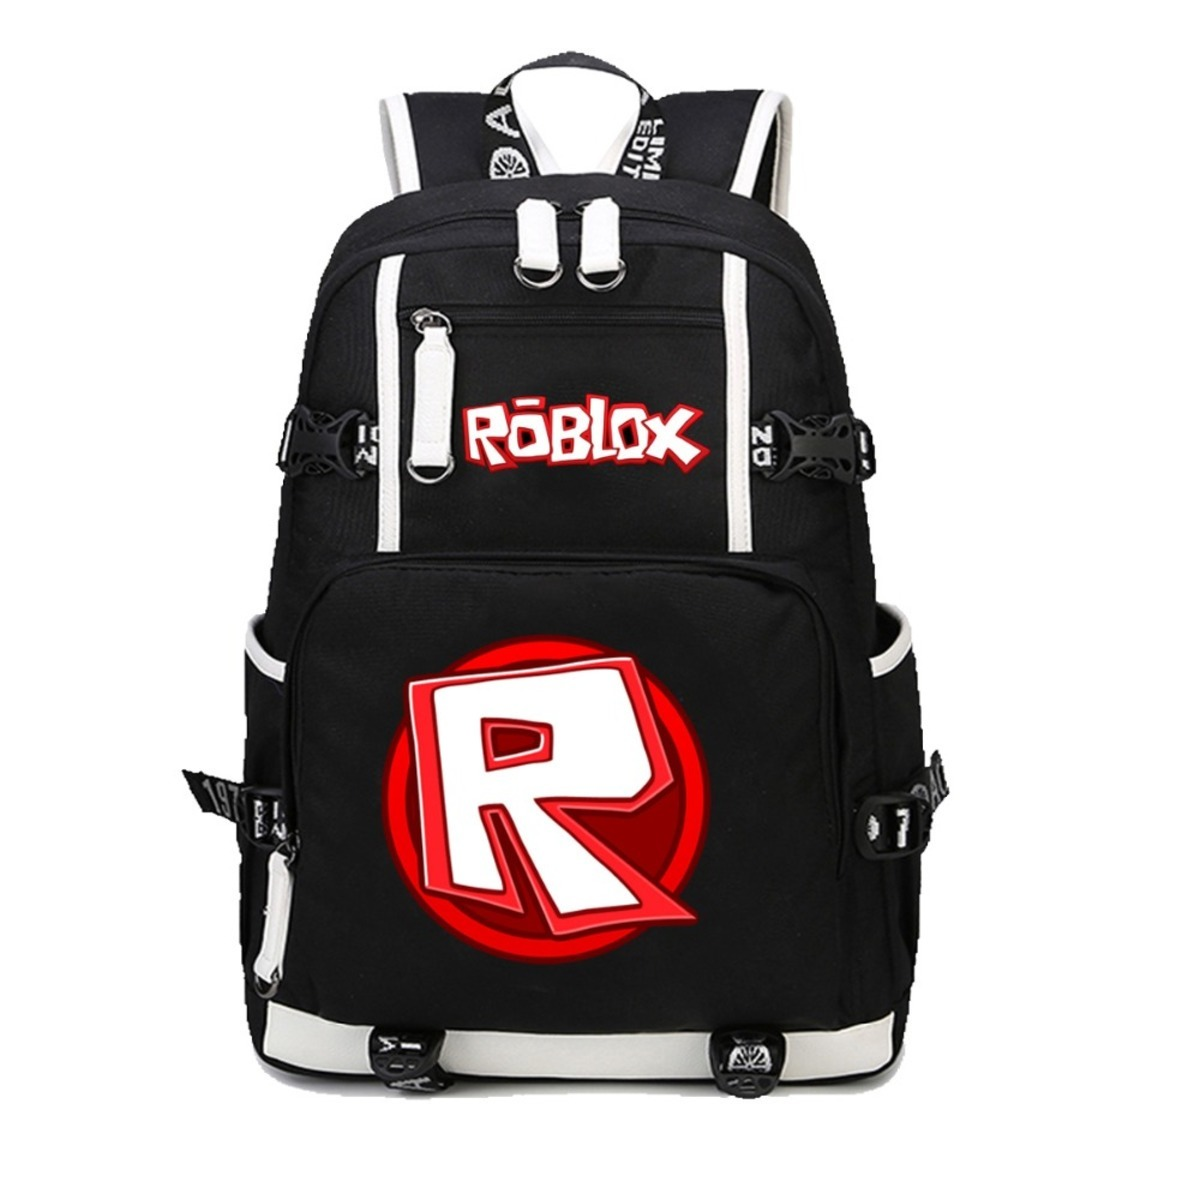 anime Roblox backpack student school bag women men shoulder travel bag Leisure Daily backpack Teenage Backpacks 5 styleanime Roblox backpack student school bag women men shoulder travel bag Leisure Daily backpack Teenage Backpacks 5 style